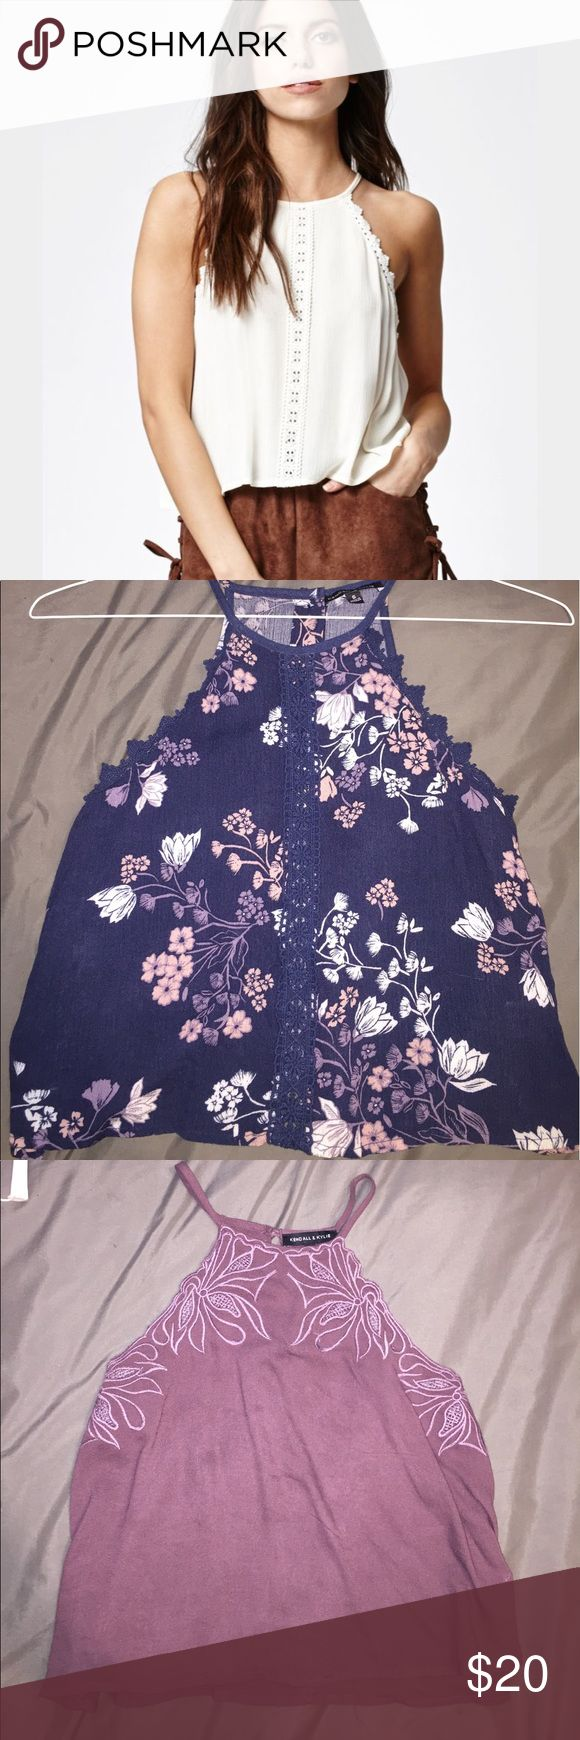 High neck blouses Model pic to show cut and fit. I have this in navy floral and a beautiful wine/mauve.  Can bundle both for 35 or sell separately for 20 each. PacSun Tops Blouses